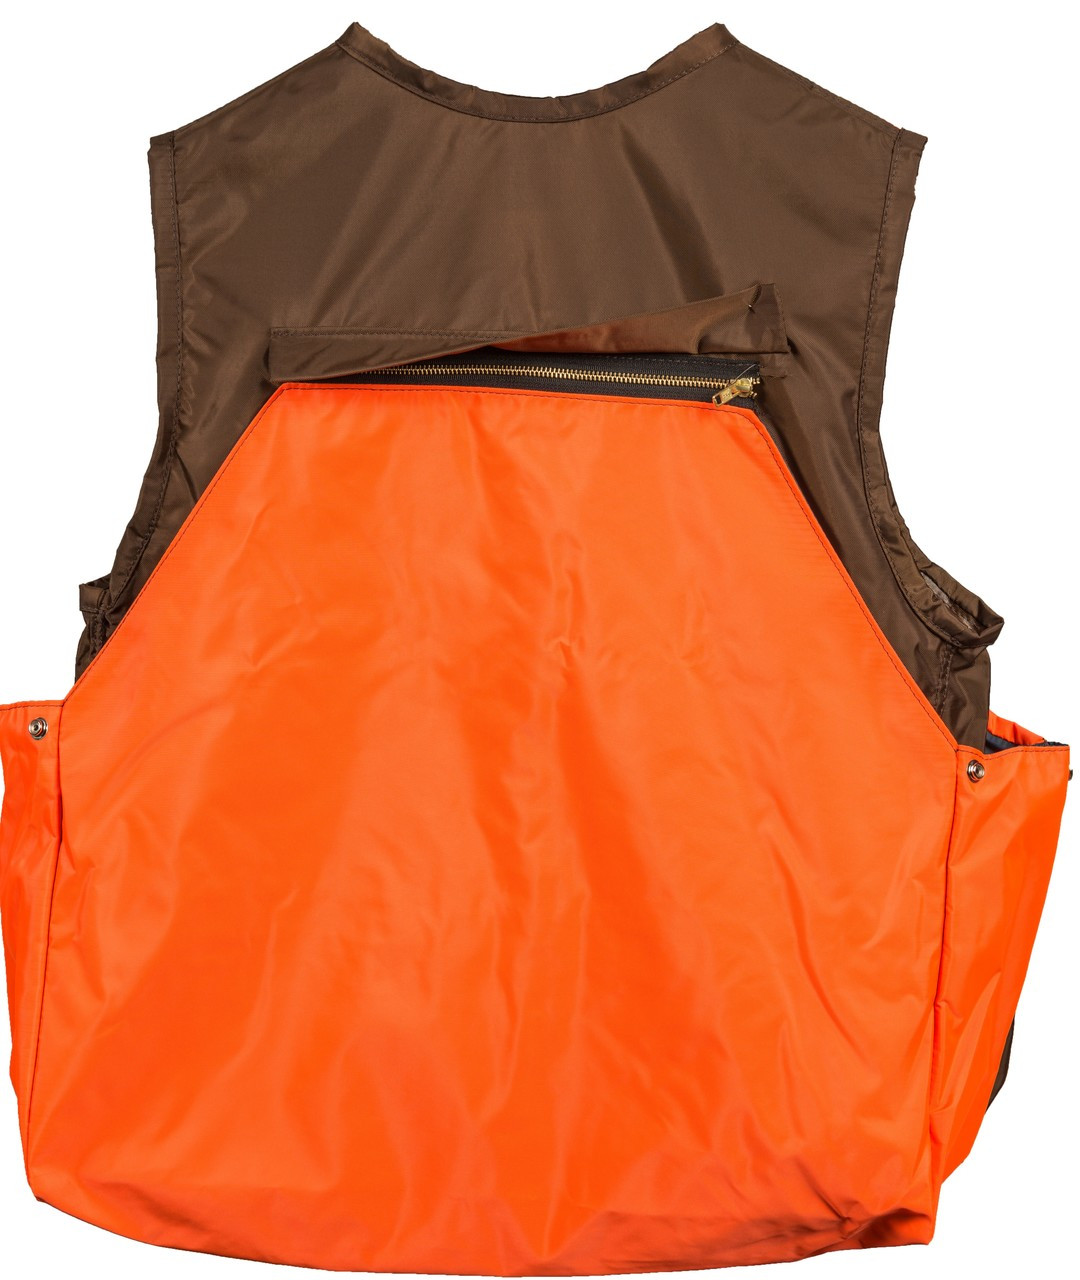 Brown and Orange Briarproof Game Vest Back by Dan's Hunting Gear | Circle G Hunting Store